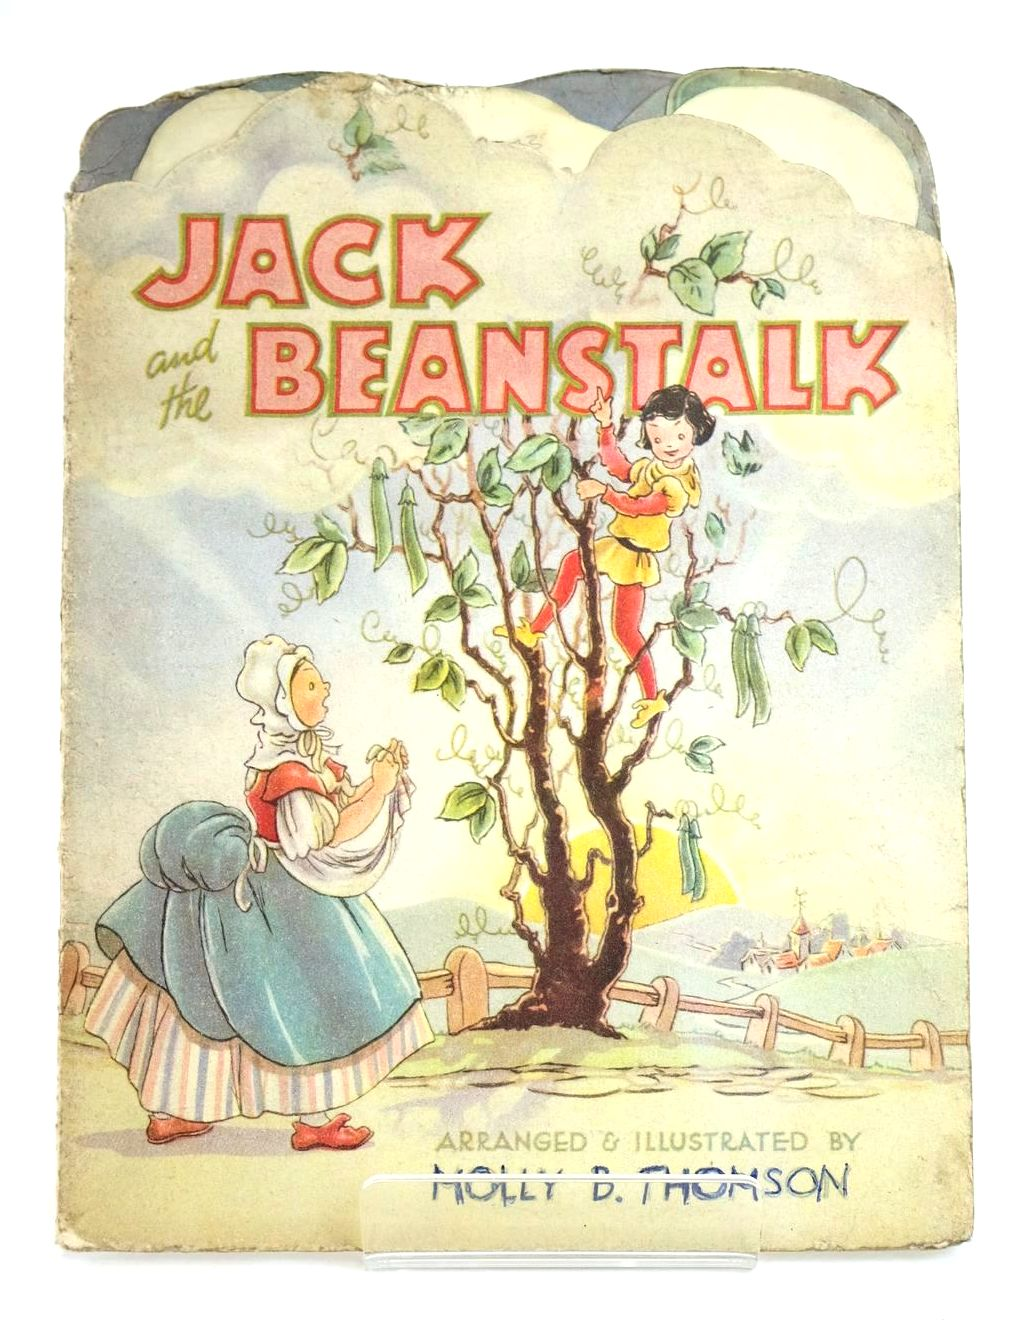 Photo of JACK AND THE BEANSTALK written by Thomson, Molly B. illustrated by Thomson, Molly B. published by Collins Clear-Type Press (STOCK CODE: 1318573)  for sale by Stella & Rose's Books